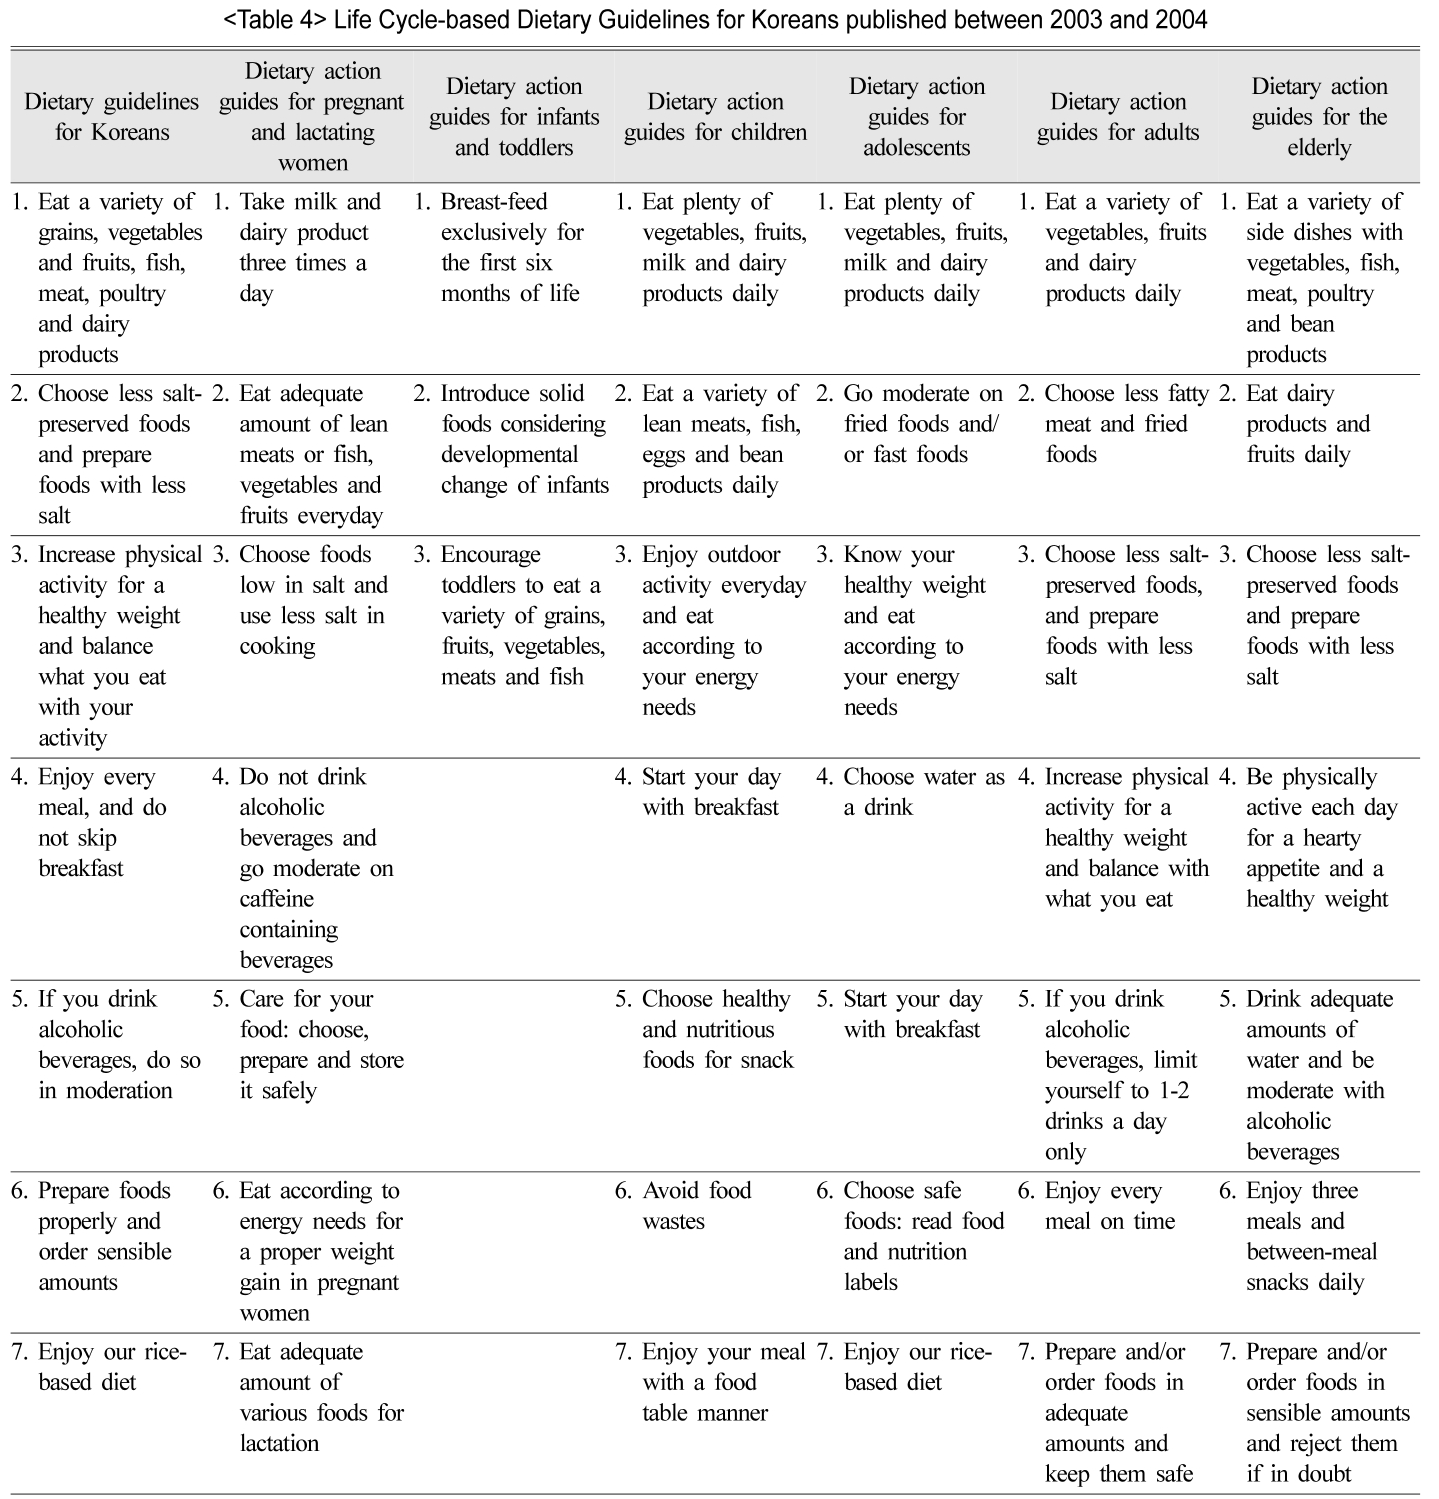 Life Cycle-based Dietary Guidelines for Koreans published between 2003 and 2004